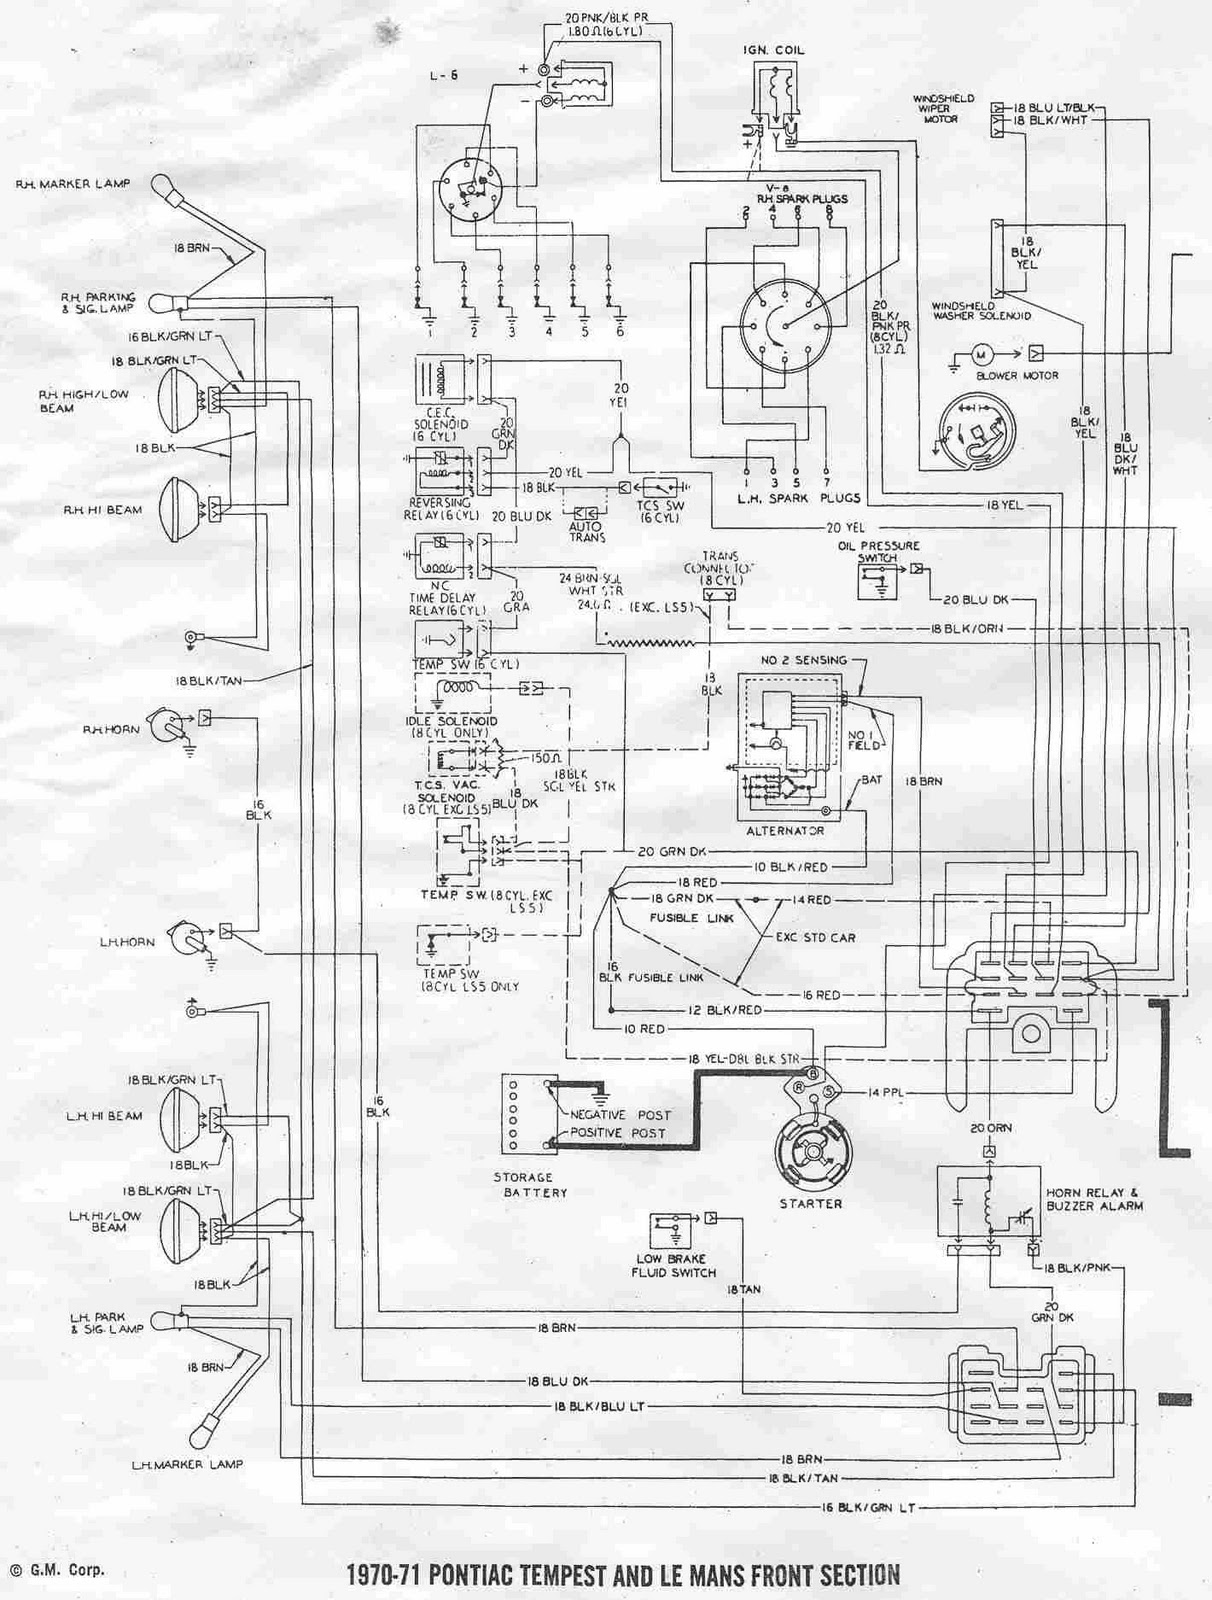 small resolution of 67 gto light wiring diagram 18 1 stromoeko de u202266 gto wiring diagram wiring diagram